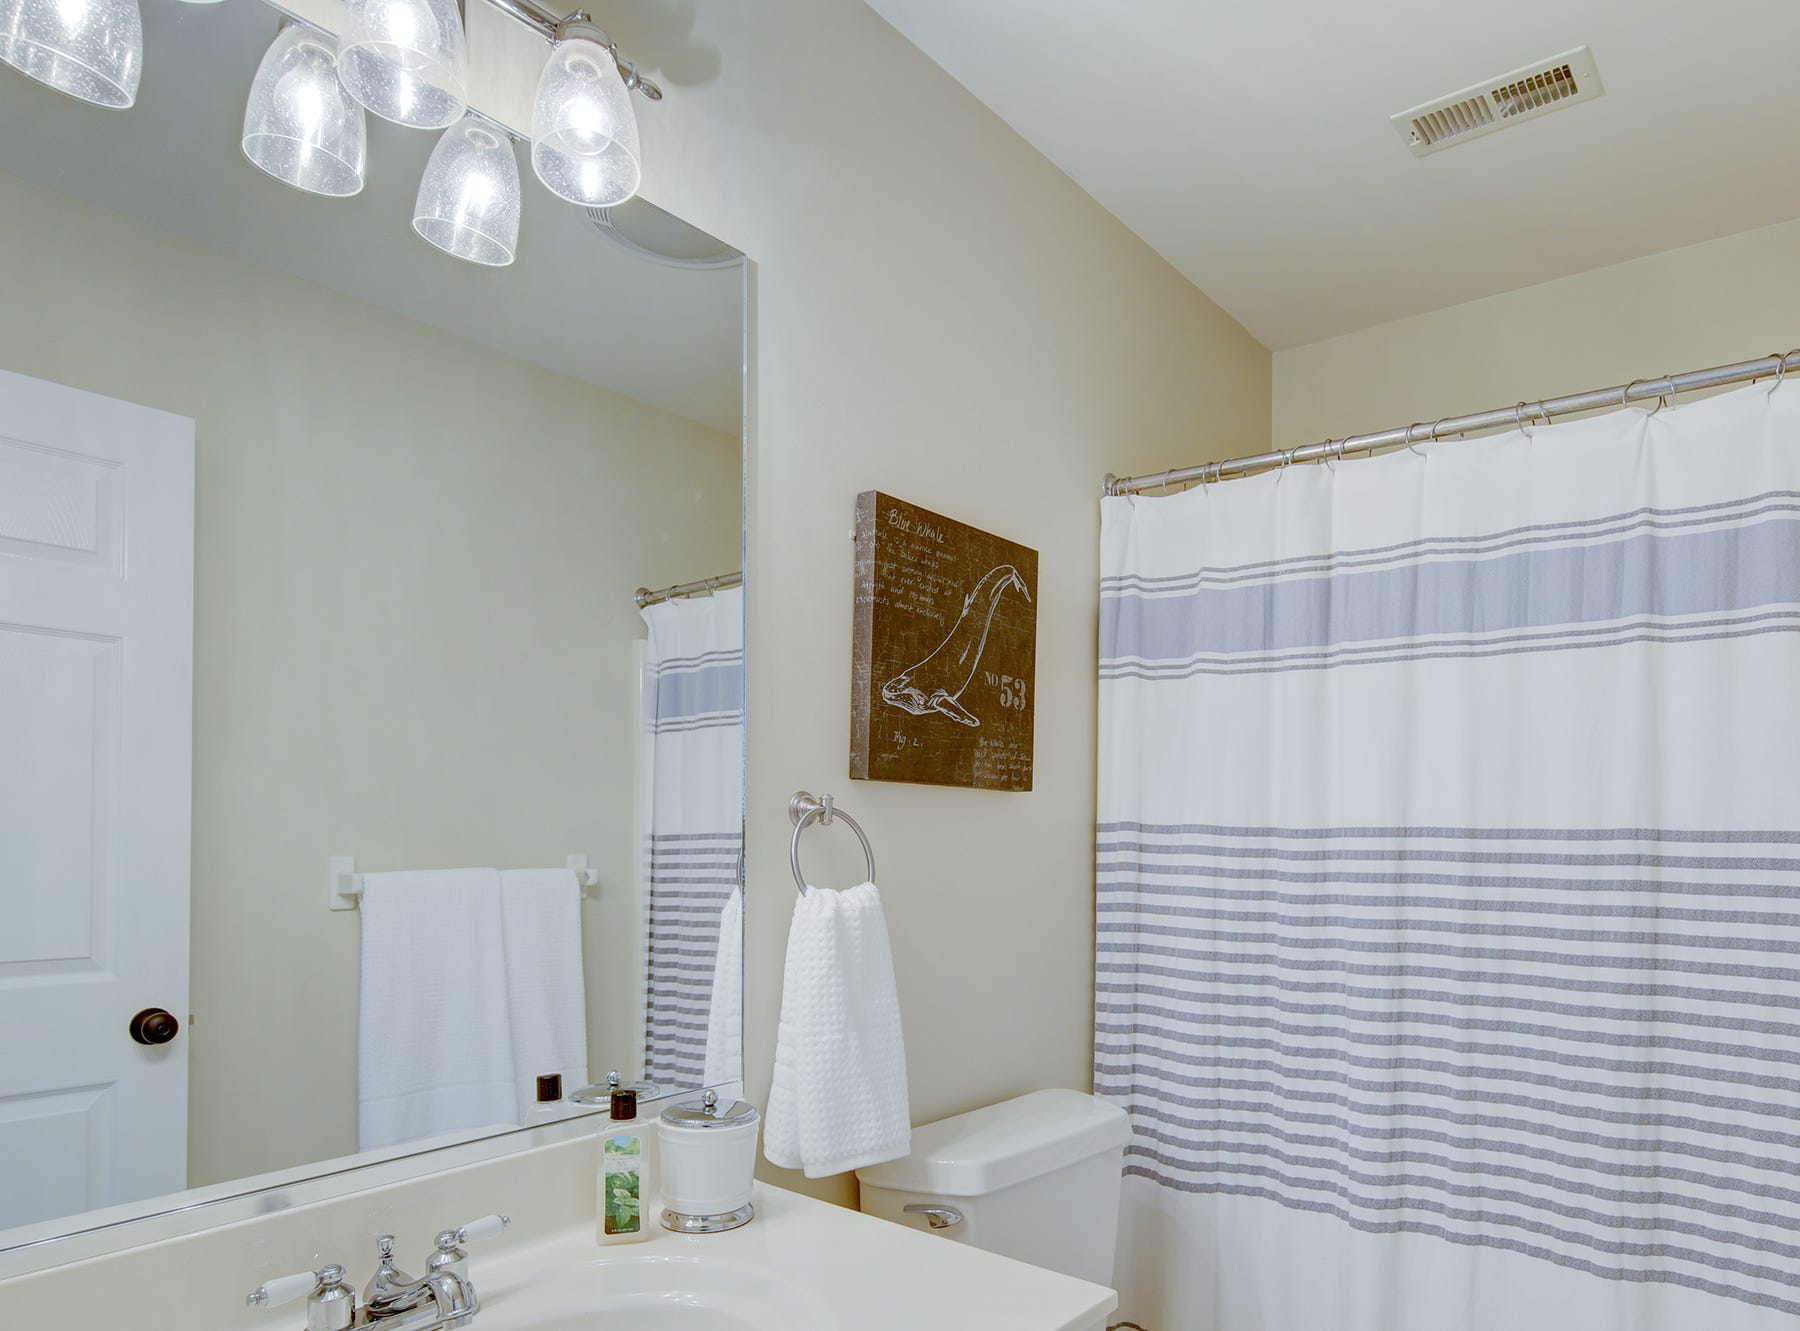 The house at 204 Lakeview Shores features four full bathrooms and two half baths.